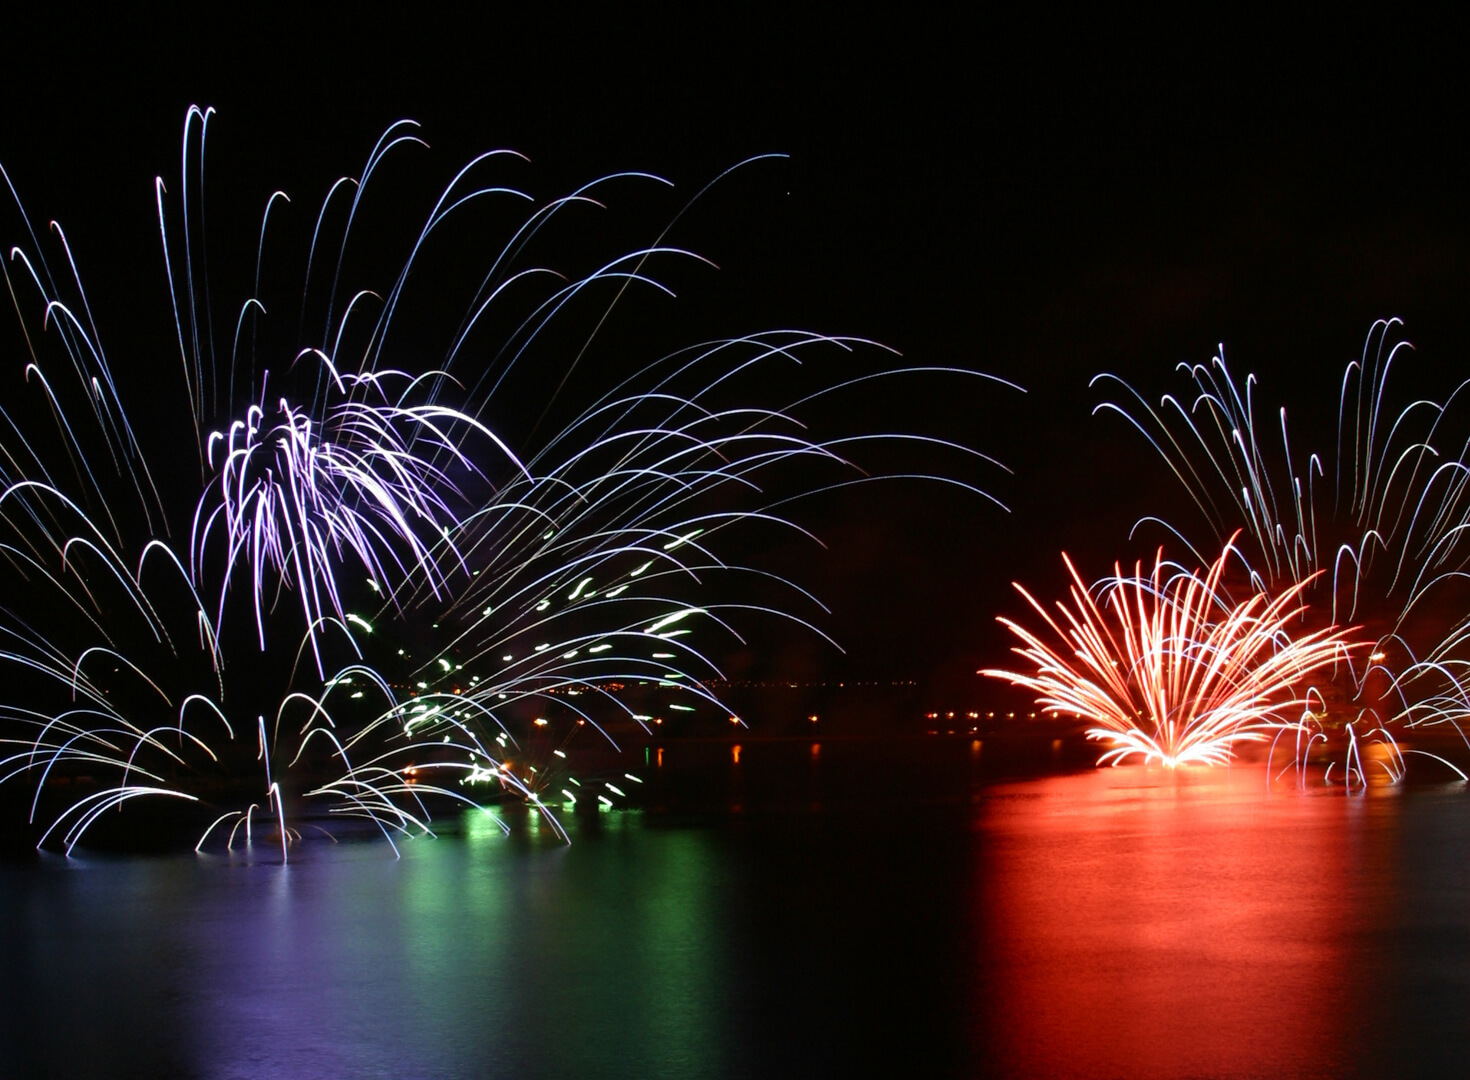 Professional Firework Displays | Entertainment Effects